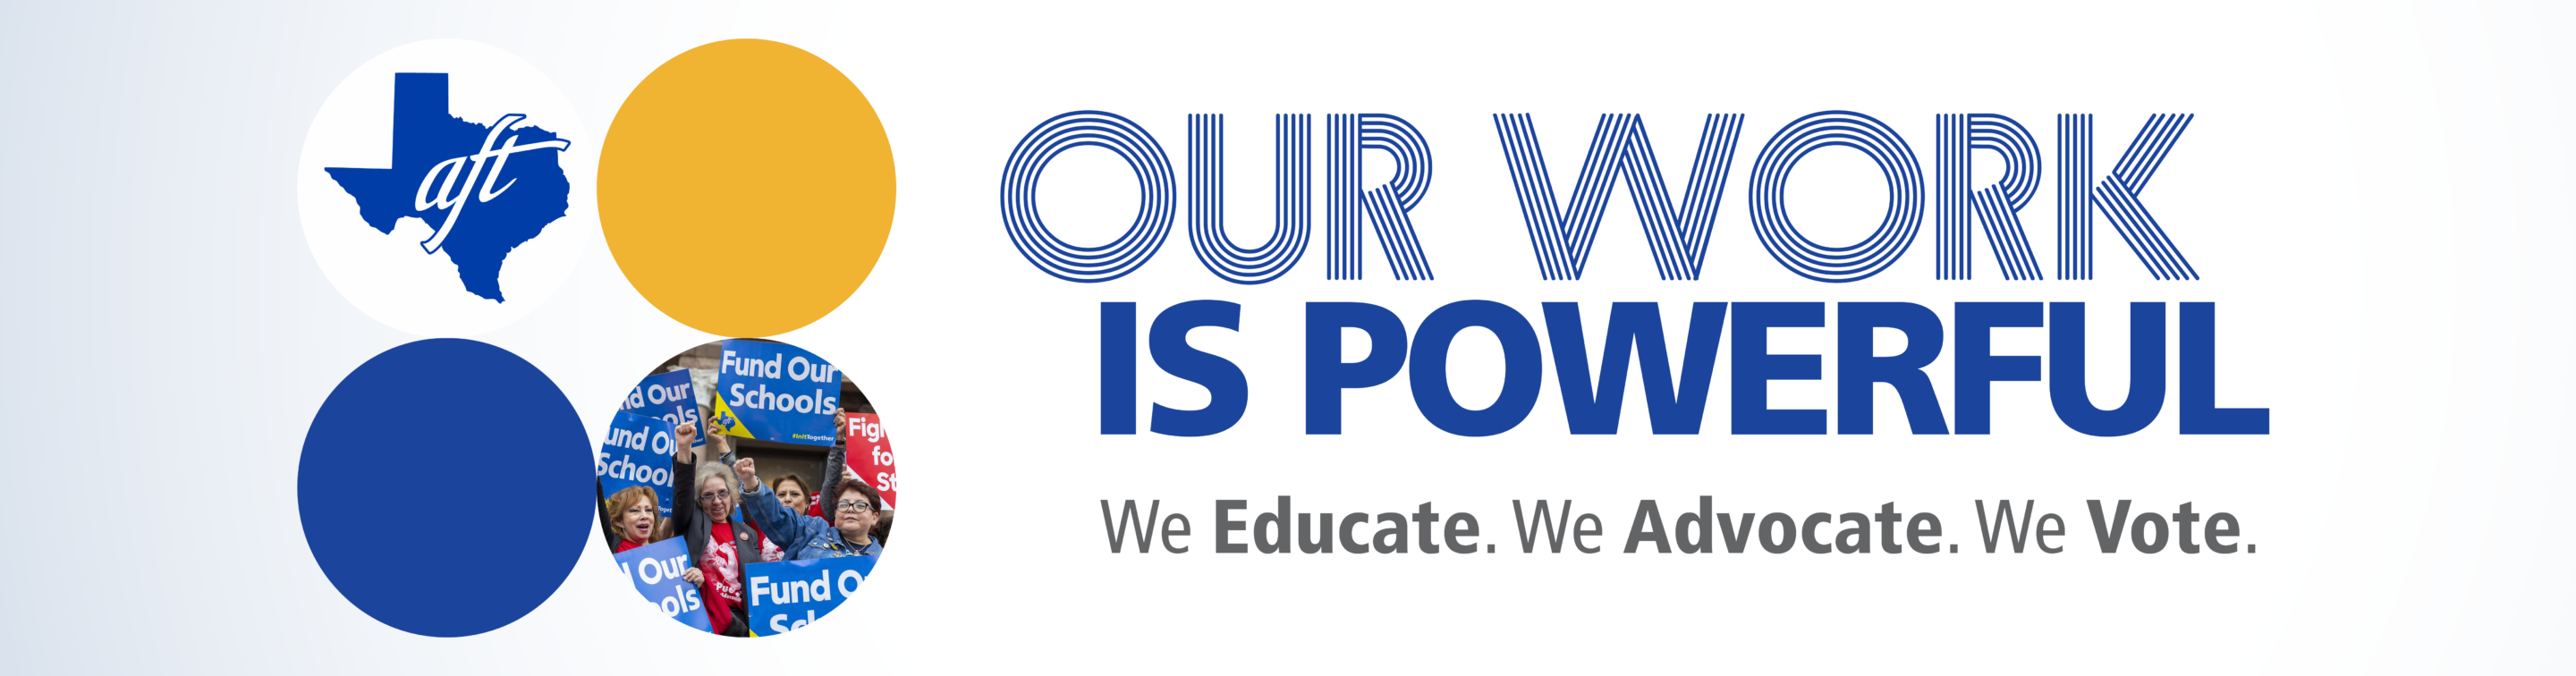 Our Work Is Powerful. We educate. We advocate. We vote.